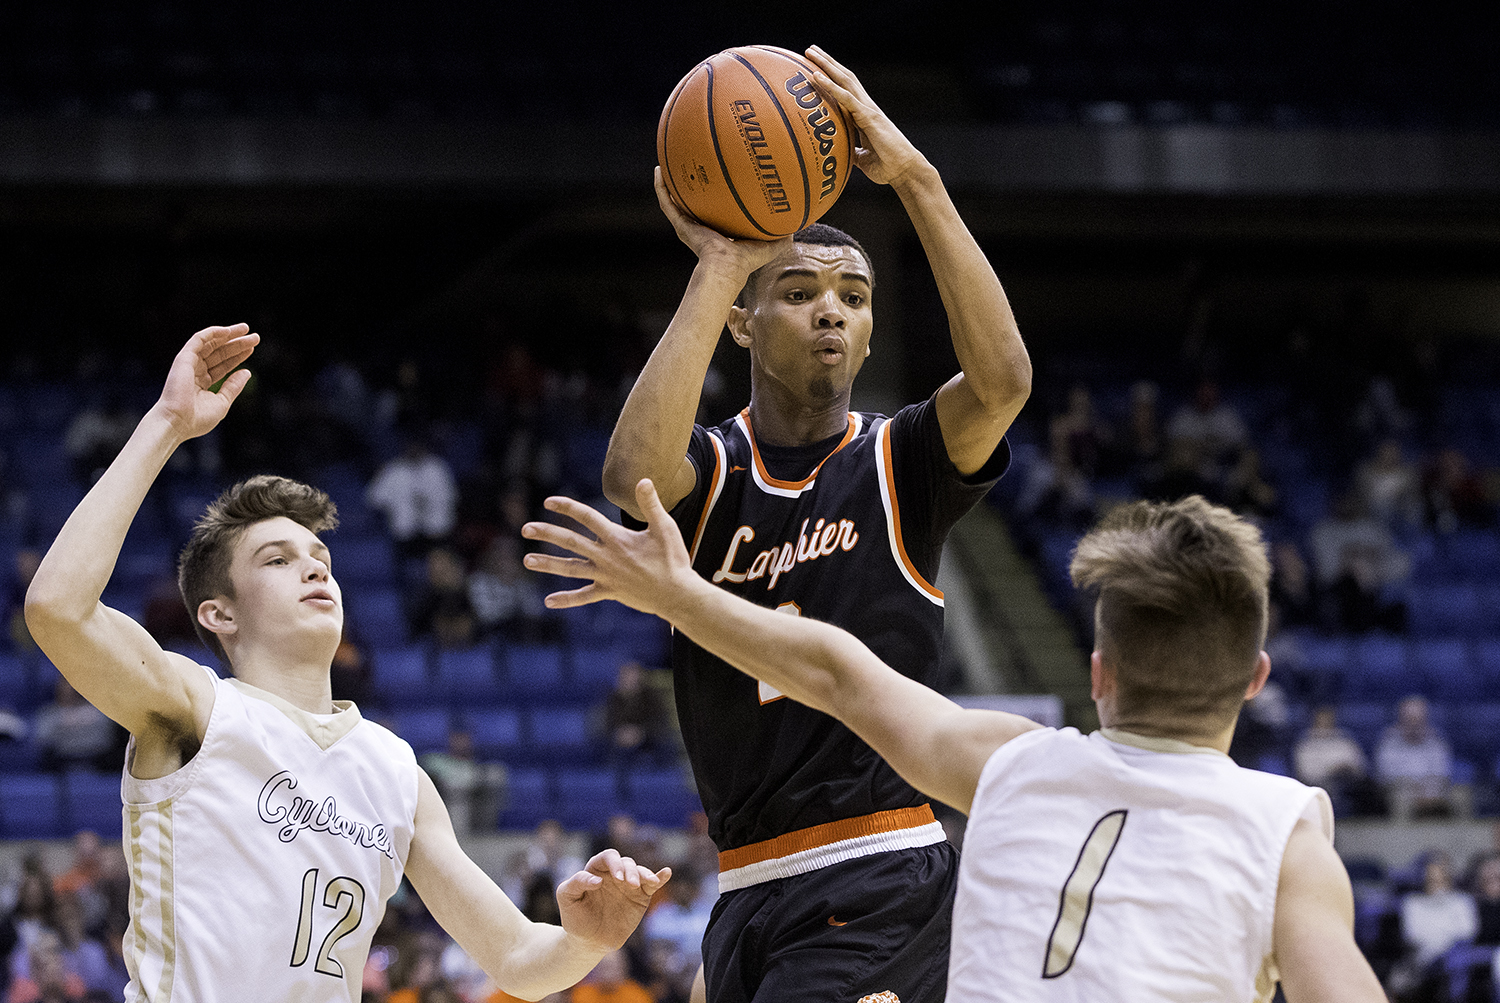 Lanphier's Cardell McGee fires a pass around Sacred Heart-Griffin's Max Heinzel during the Boys City Tournament at the Bank of Springfield Center Friday, Jan. 19, 2018. [Ted Schurter/The State Journal-Register]